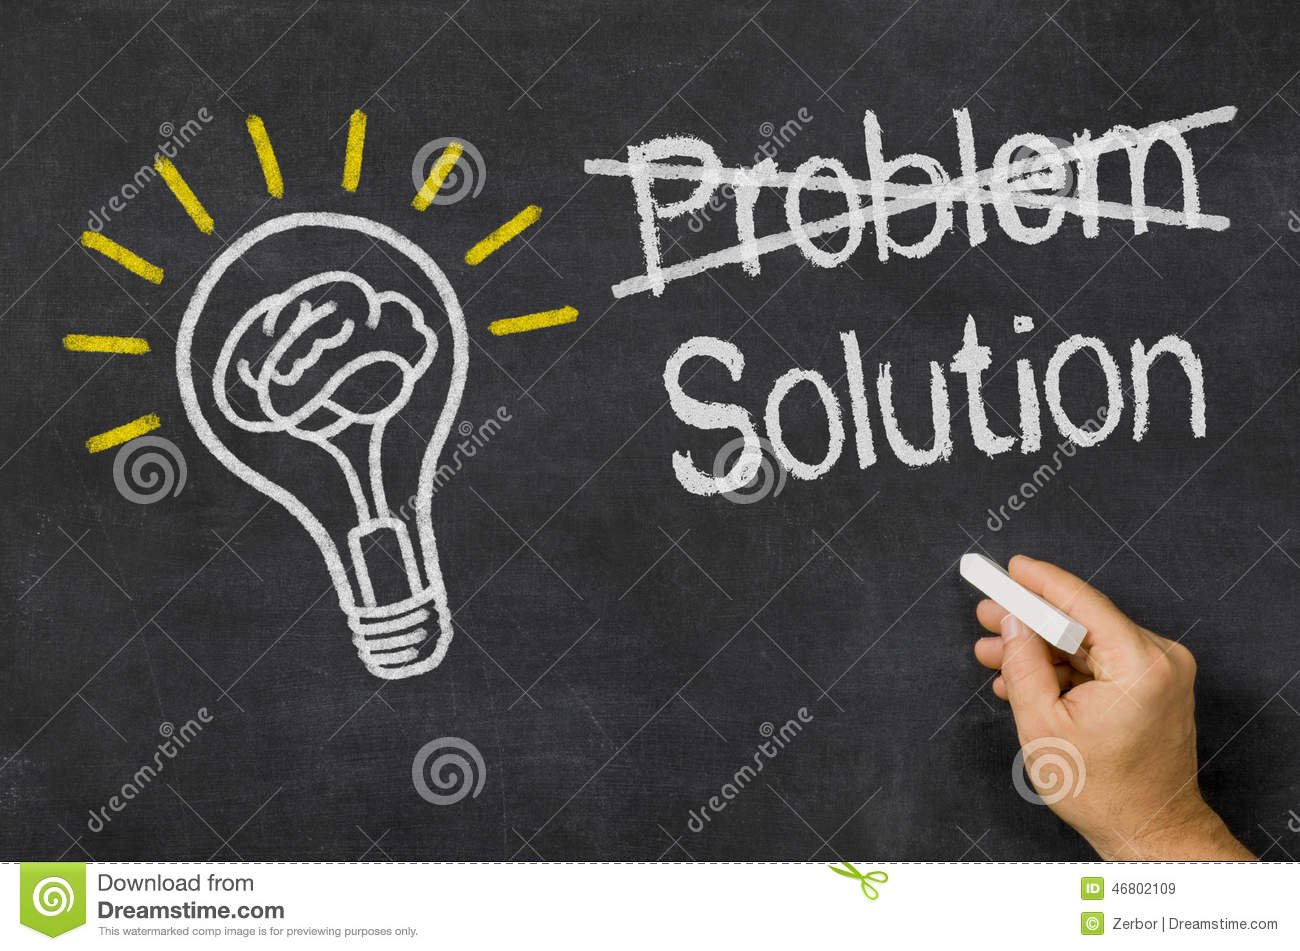 agency problems and its solutions Companies selling similar products or services often belong to an industry association that may help resolve problems between its members and consumers federal government file a complaint with the federal trade commission at ftcgov/complaint.